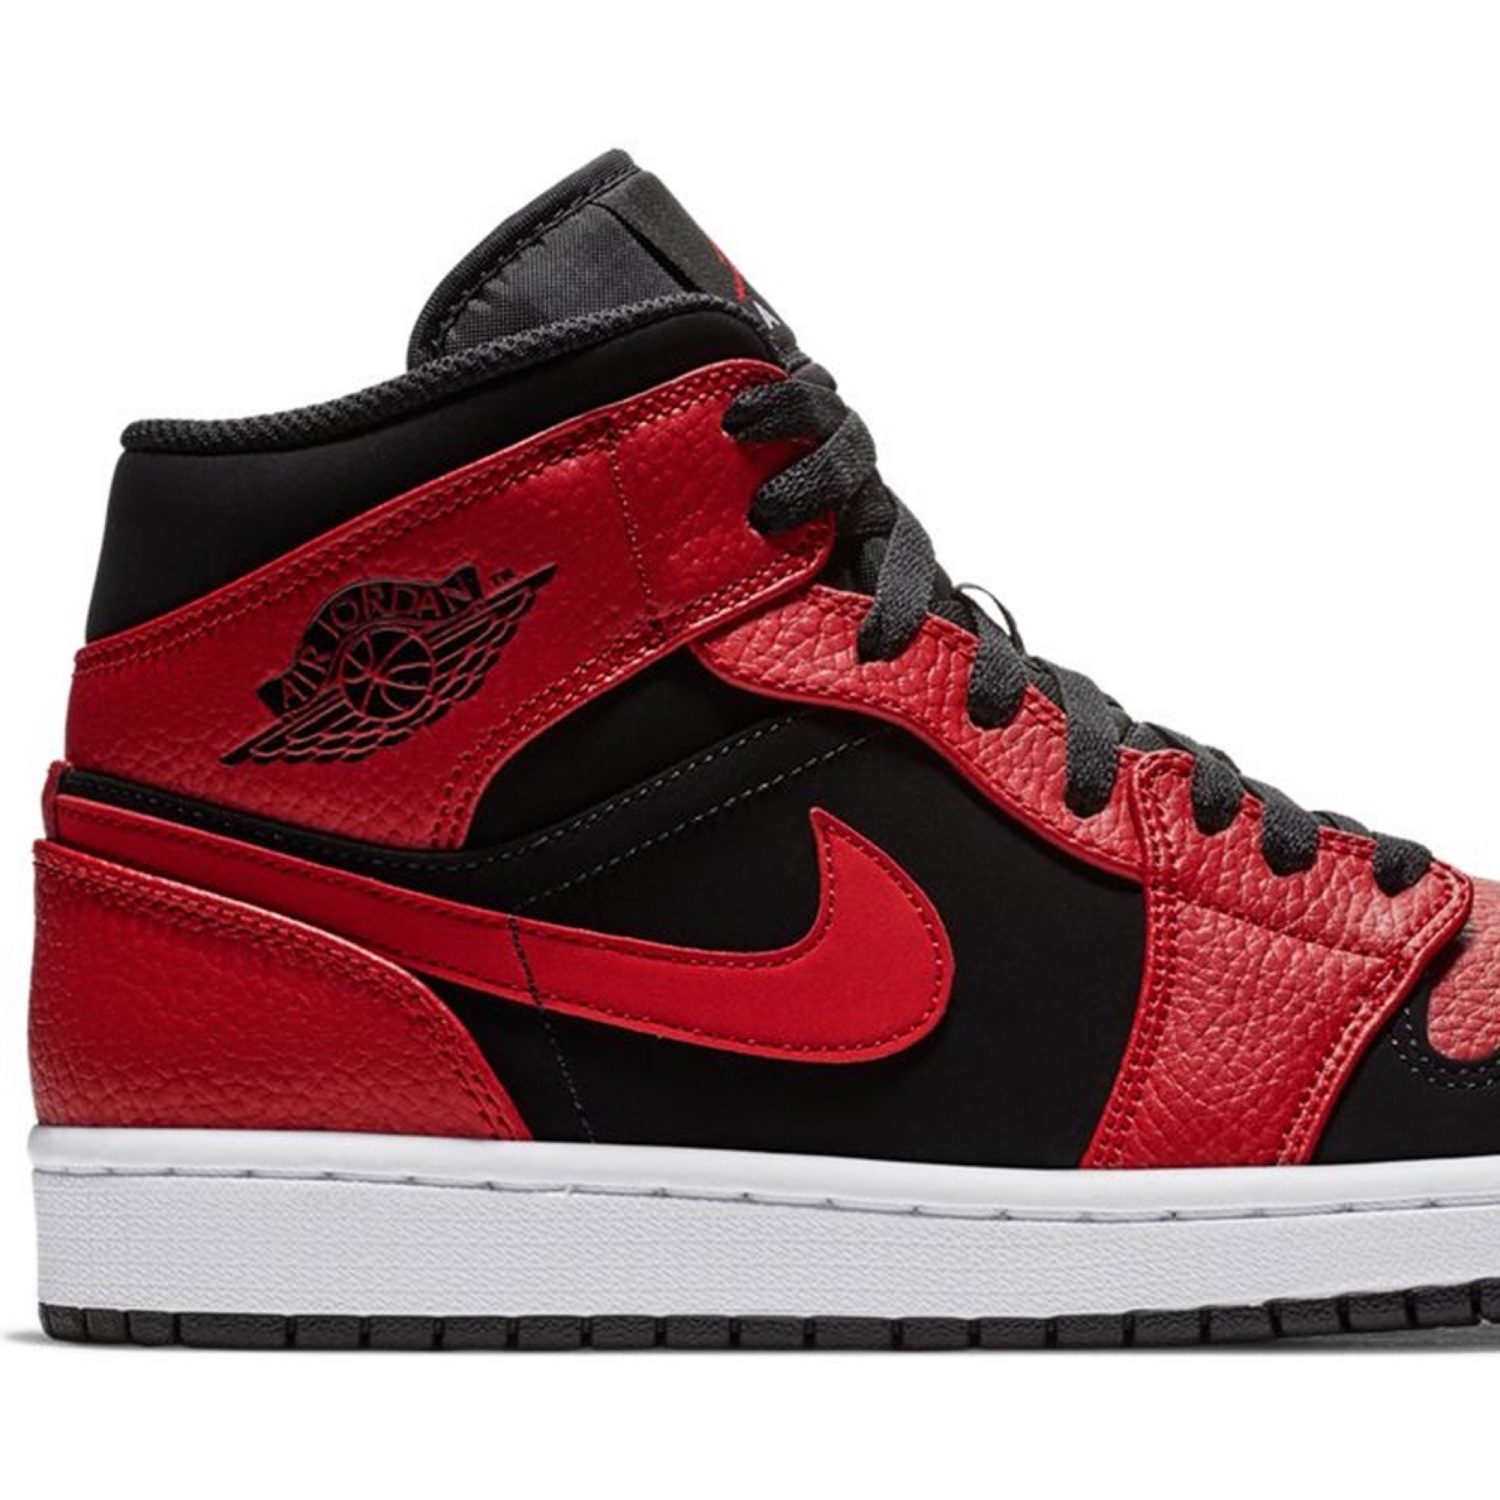 new collection where can i buy best prices Nike Air Jordan 1 Mid Reverse Bred